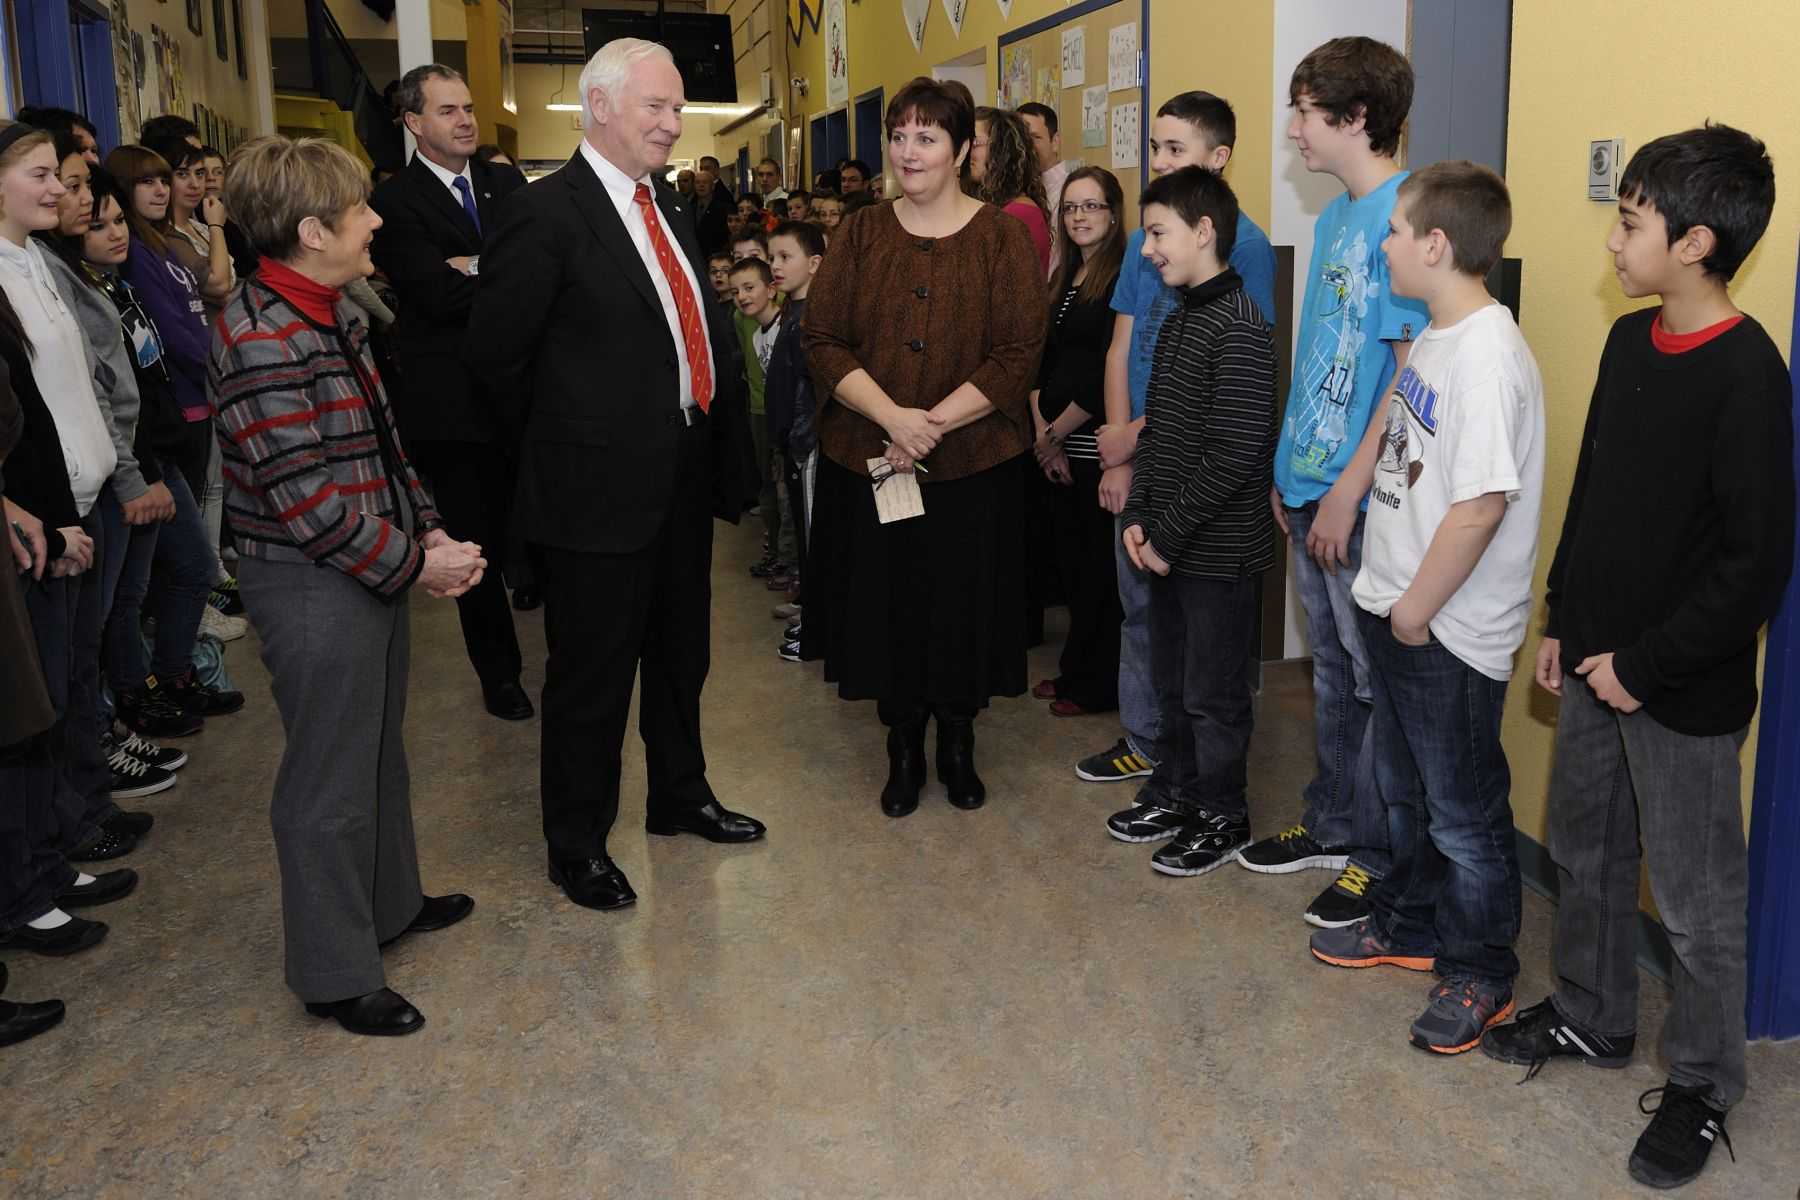 During their second day in Yellowknife, Their Excellencies the Right Honourable David Johnston, Governor General of Canada, and Mrs. Sharon Johnston met with members of the Fédération franco-ténoise, an organization that promotes, encourages and defends Northwest Territories French-speaking communities. Their Excellencies also met faculty and francophone students at Écolle Allain St-Cyr.